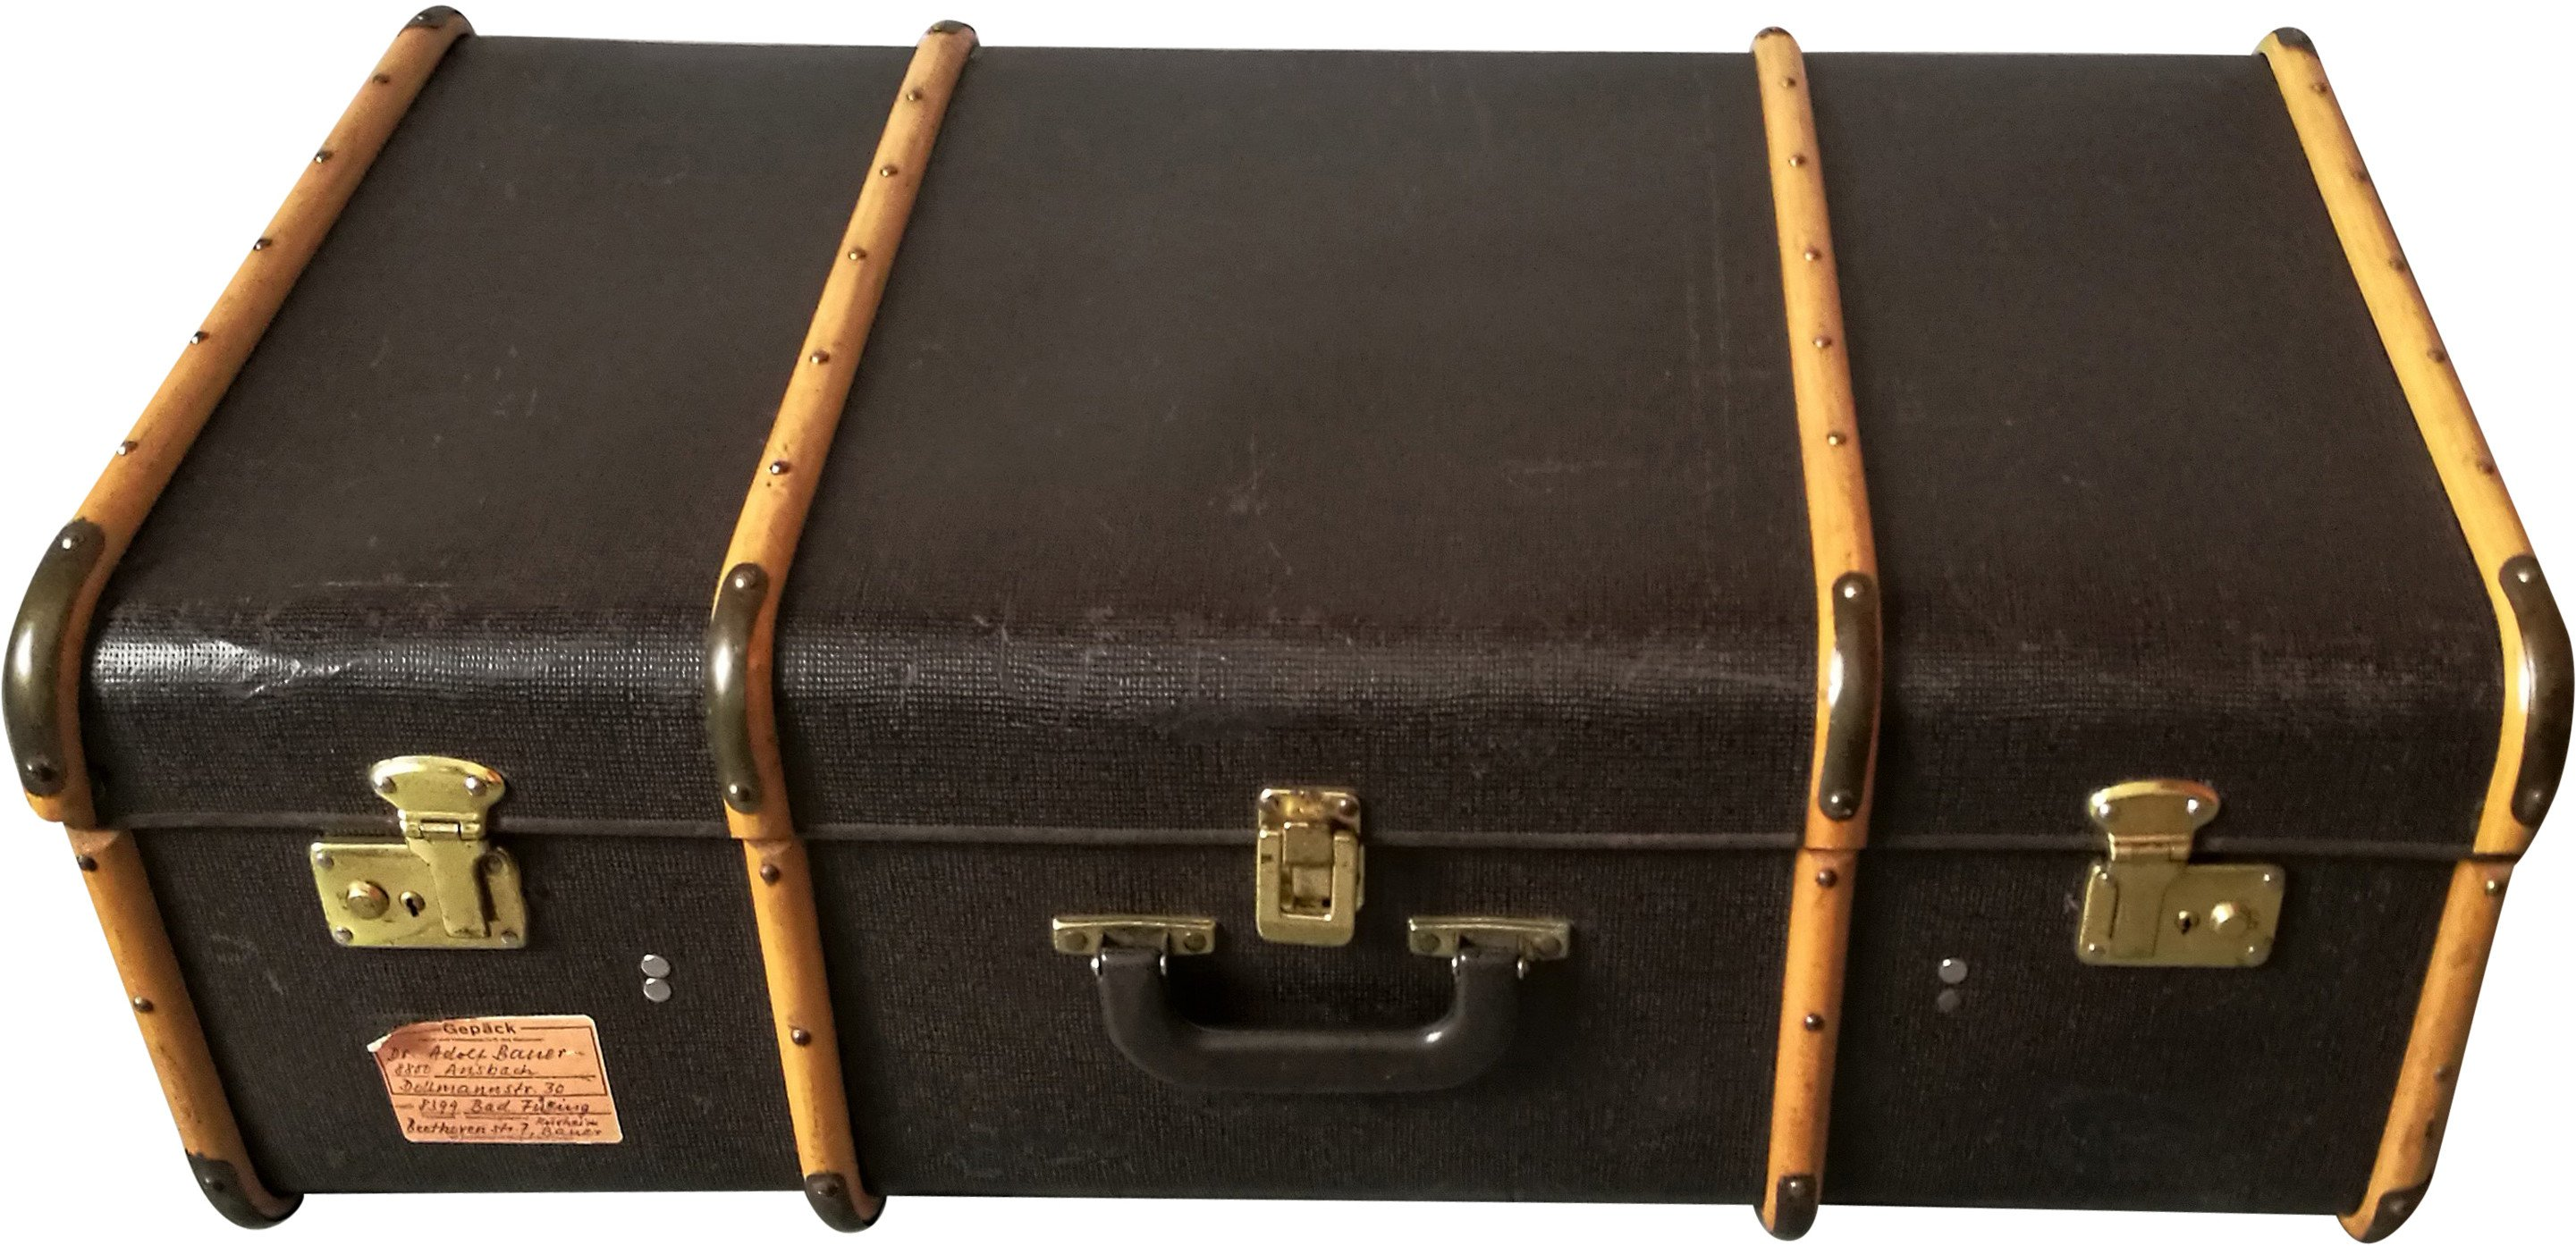 Travel Suitcase, 1940s